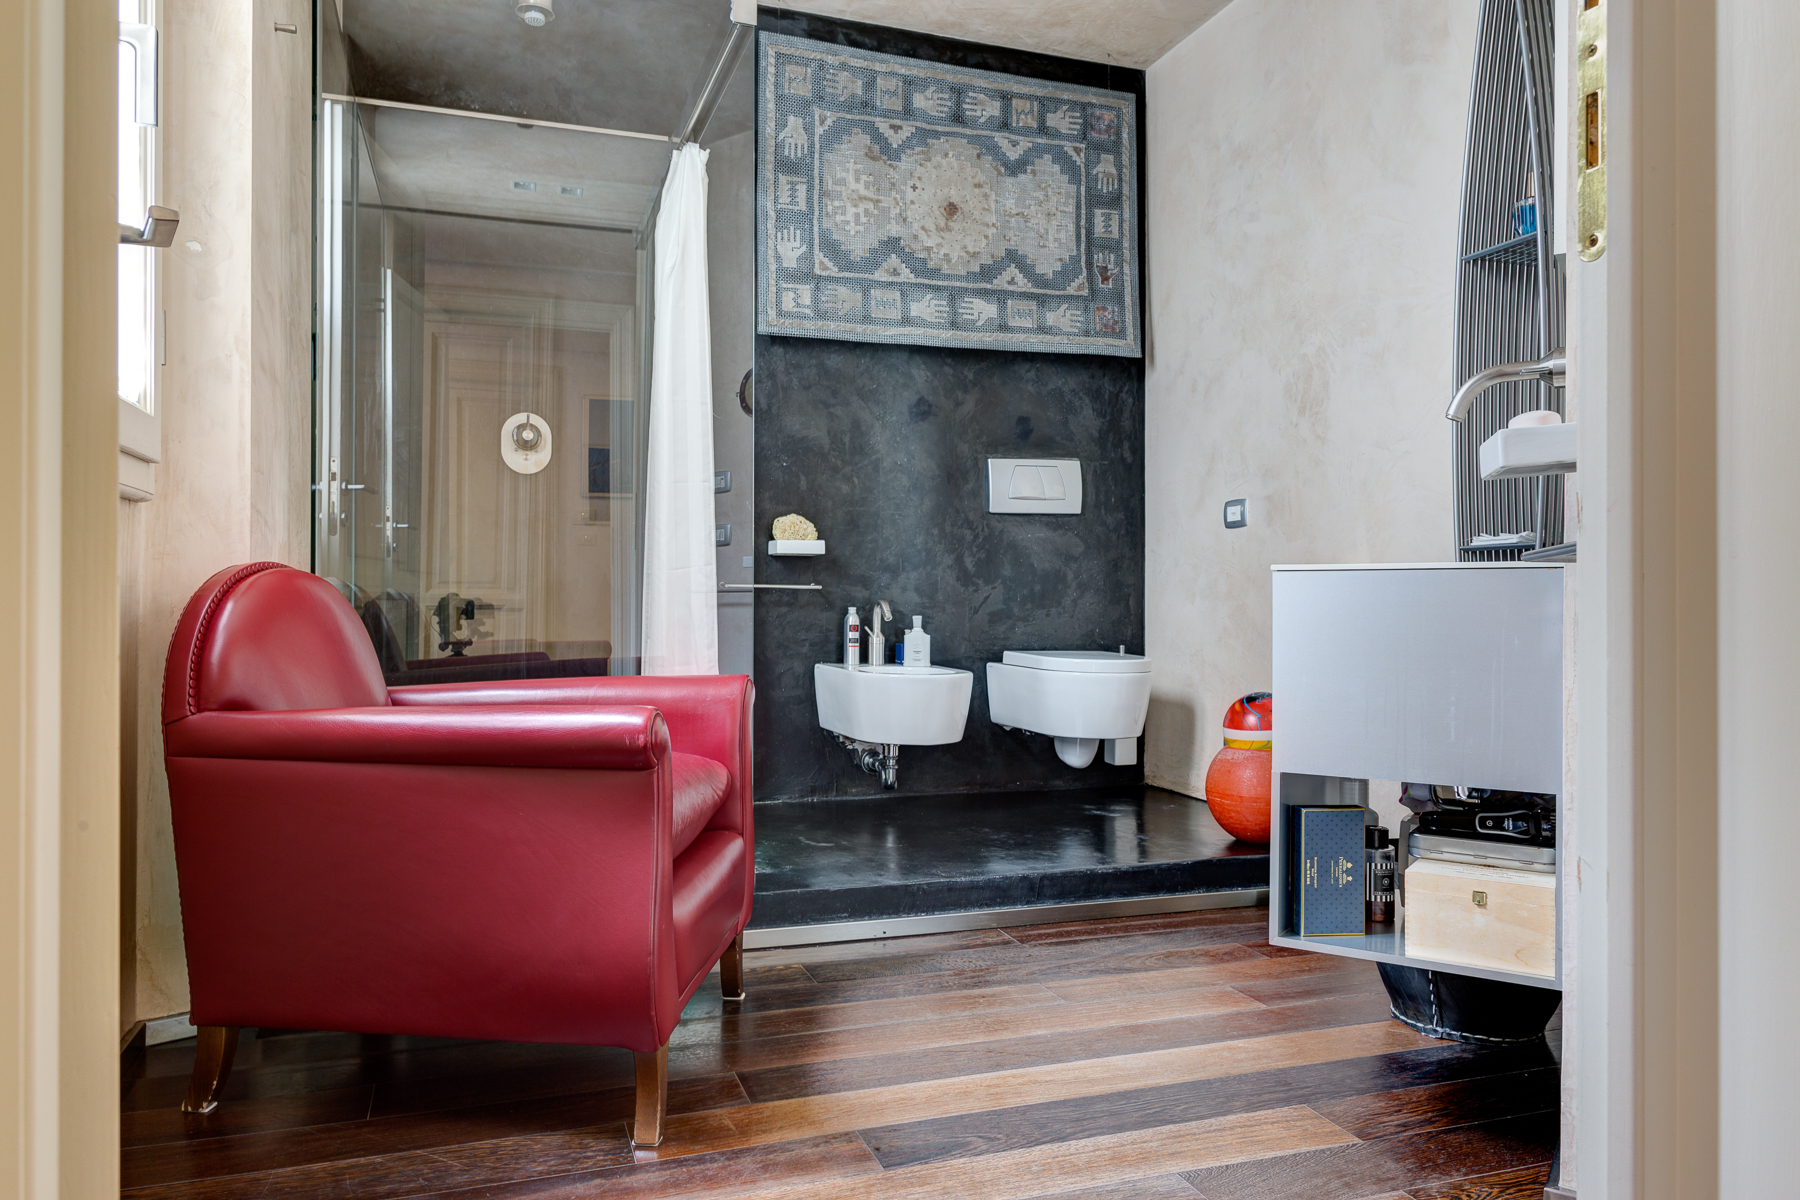 Additional photo for property listing at Design apartment in Florence Via Lorenzo il Magnifico Firenze, Florence 50129 Italien